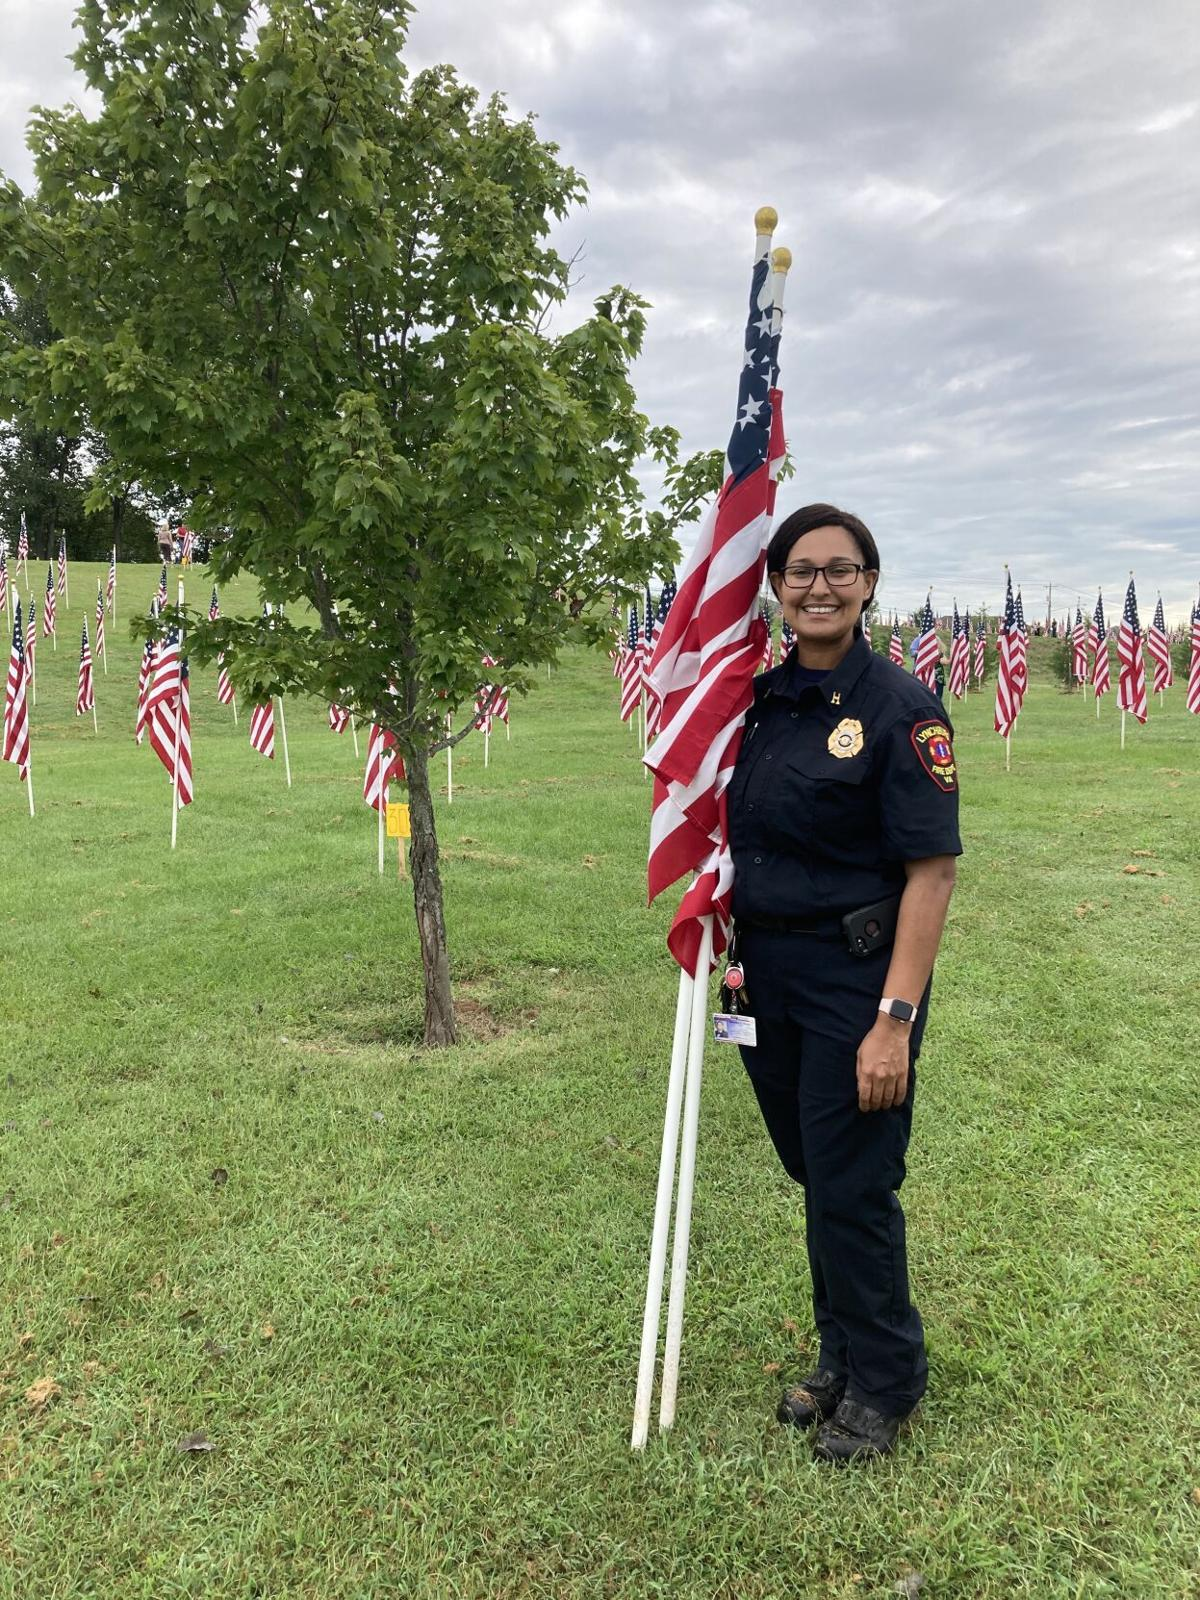 LFD member collects her flag